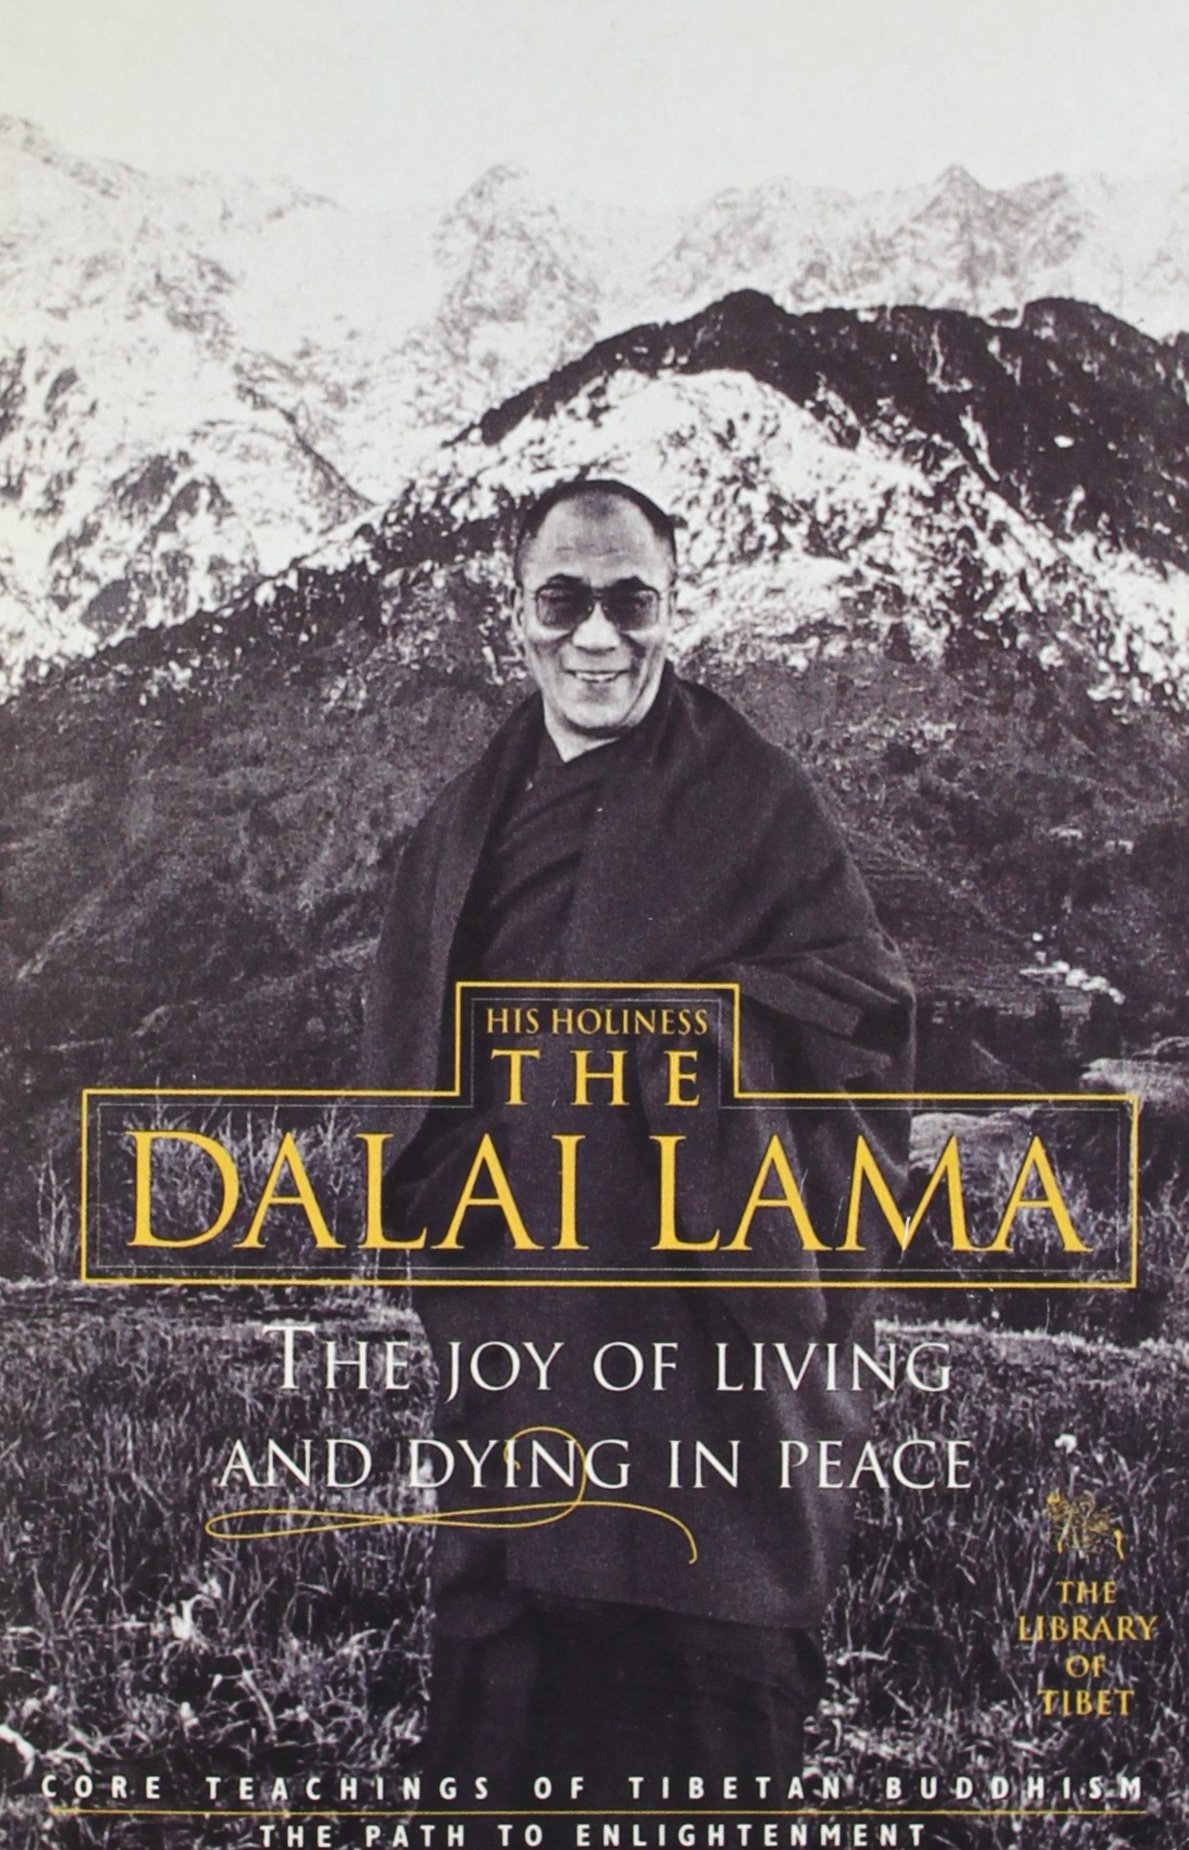 THE JOY OF LIVING AND DYING IN PEACE - The Library of Tibet